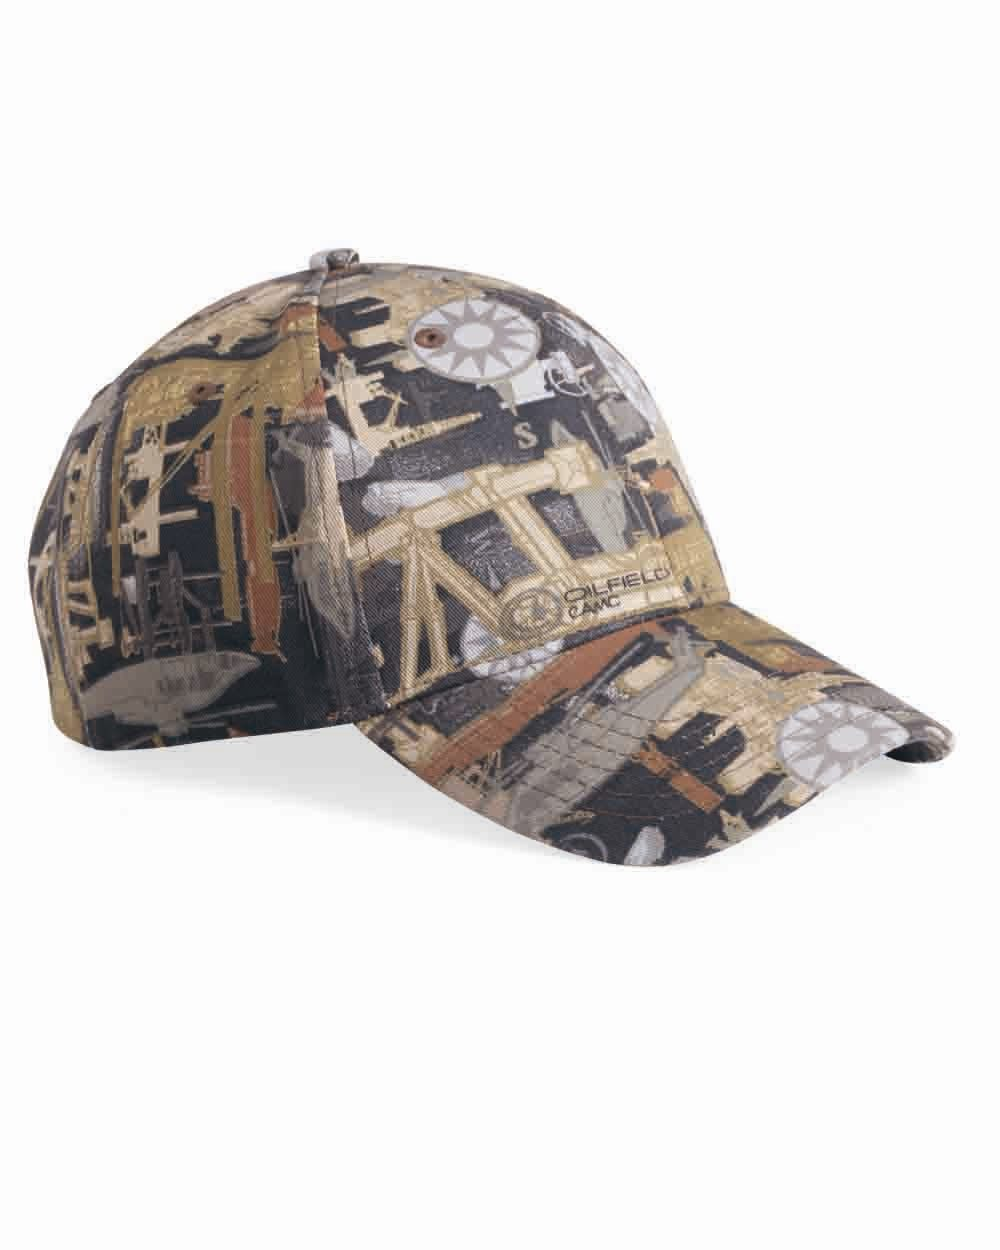 Kati OIL25 - Oilfield Camo Cap